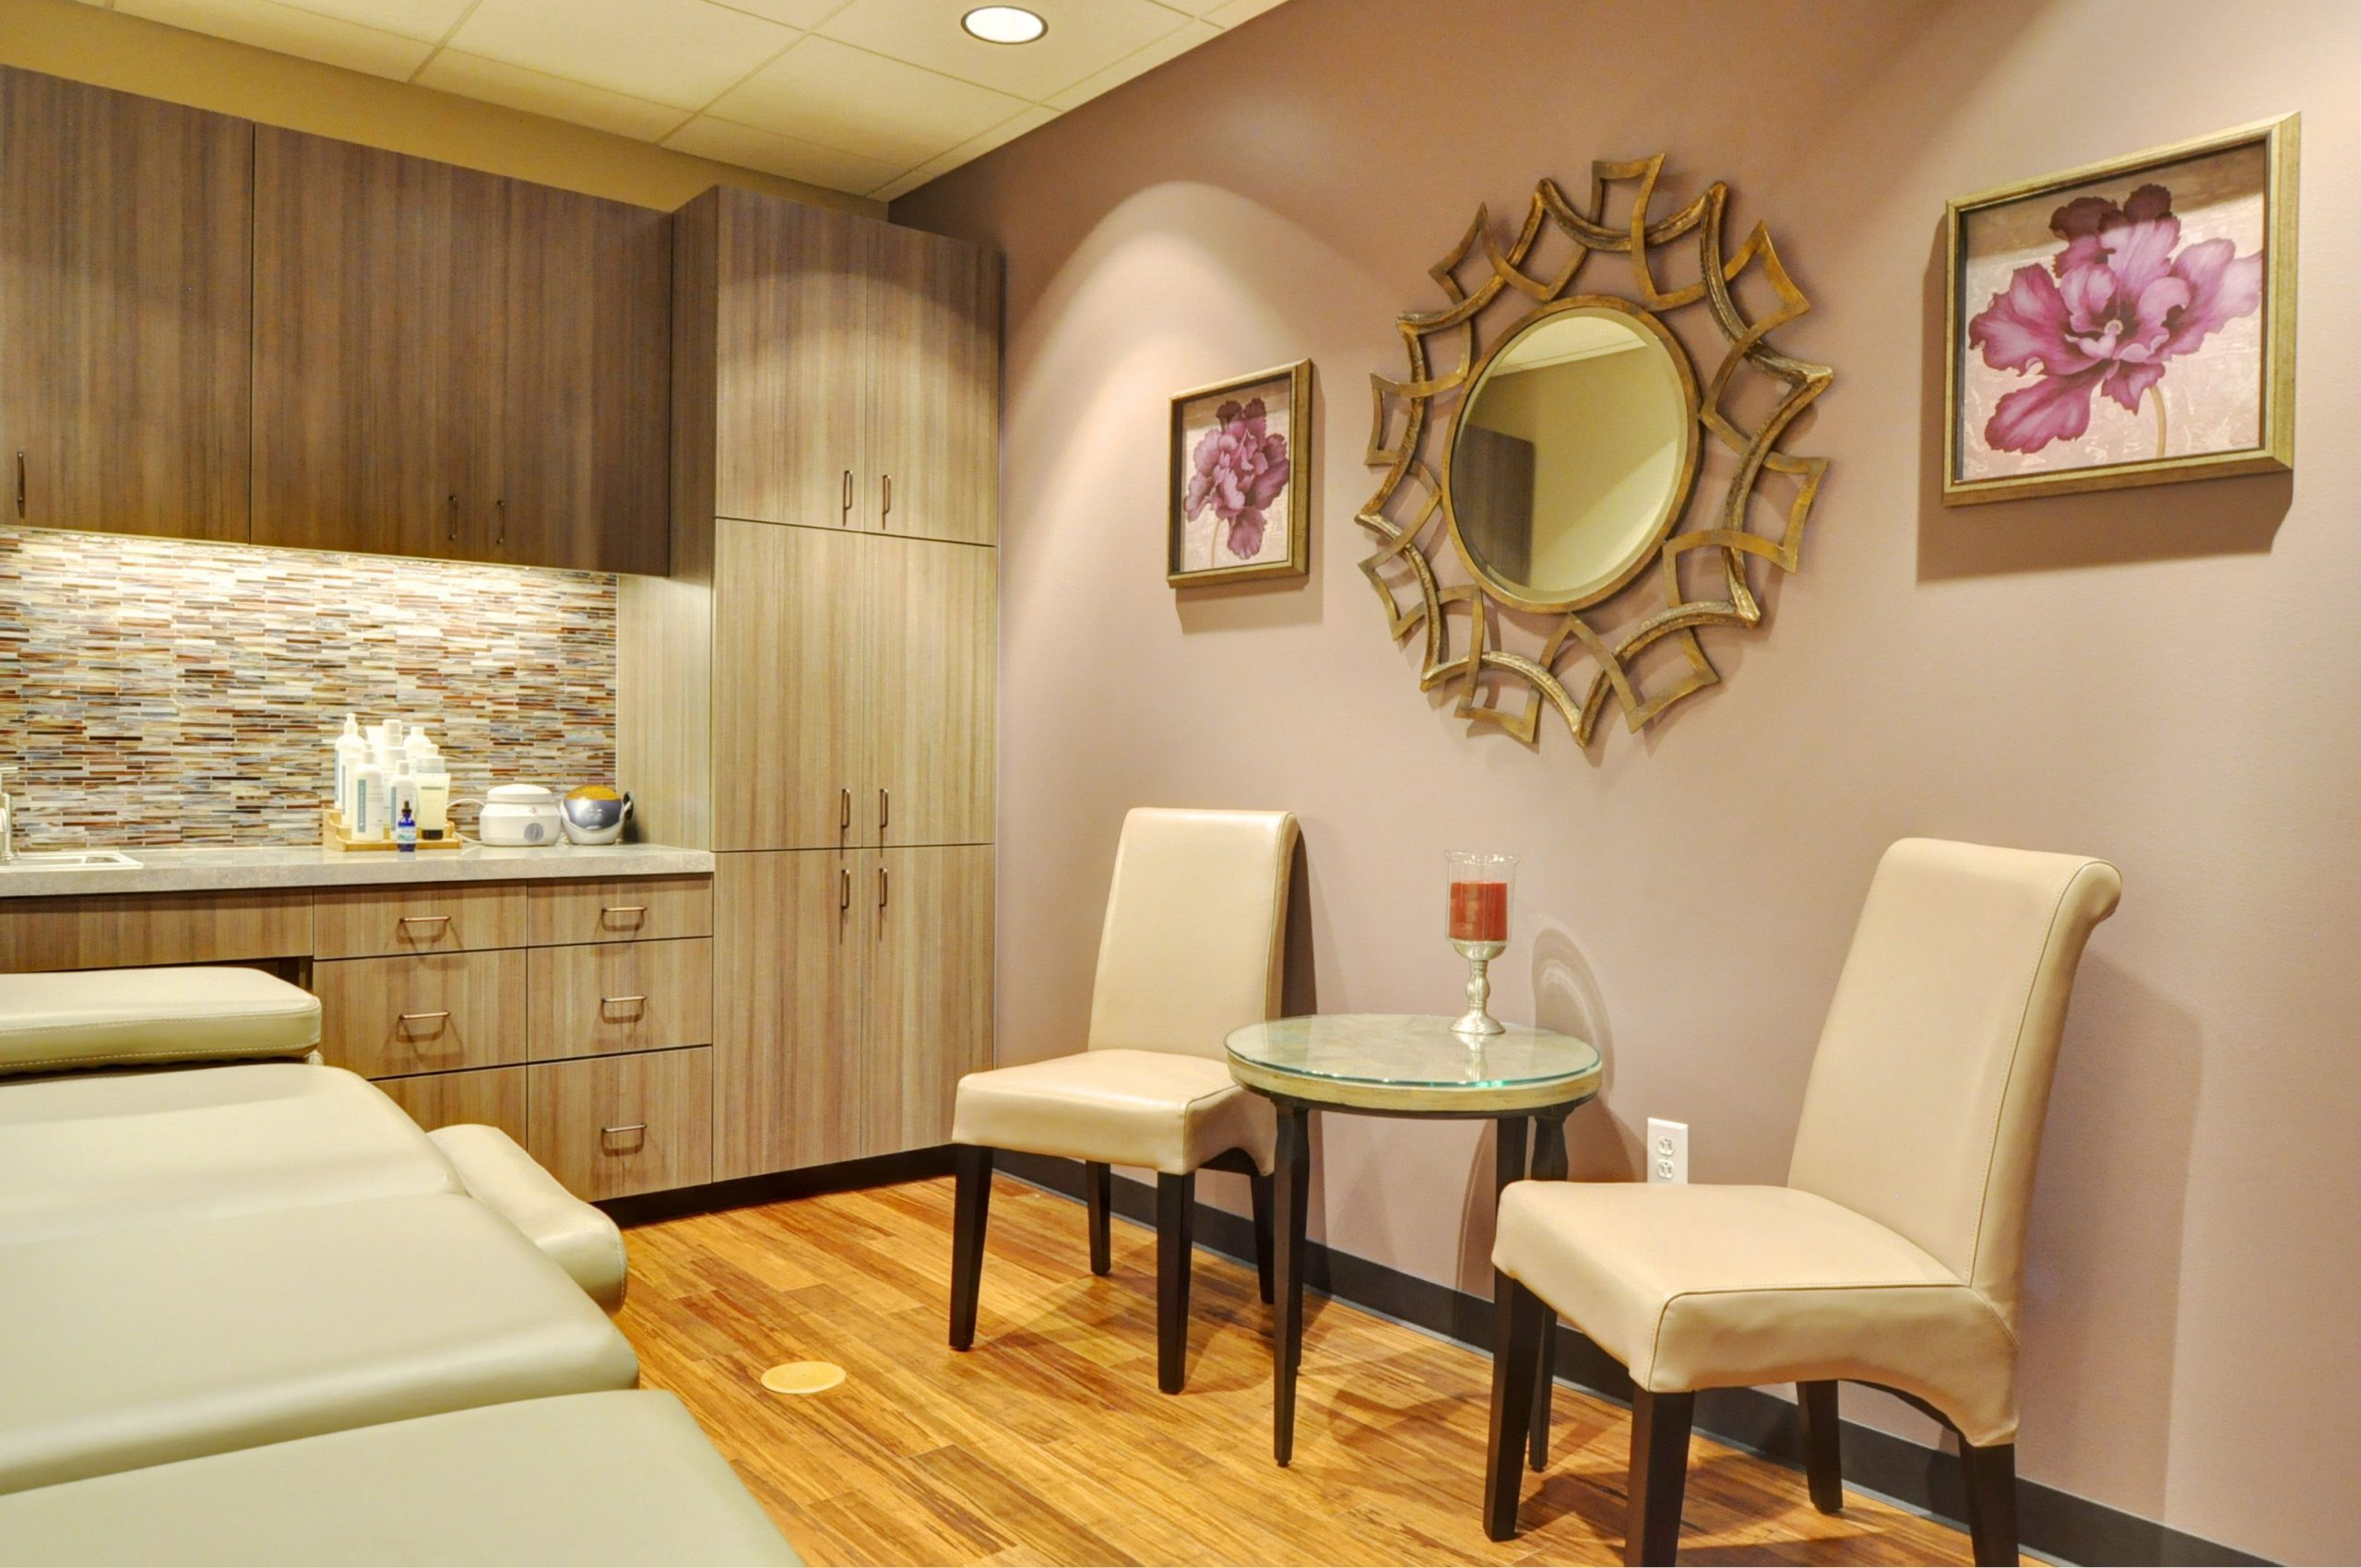 Important Things To Know Before Going To A Doctor Operated Medical Spa